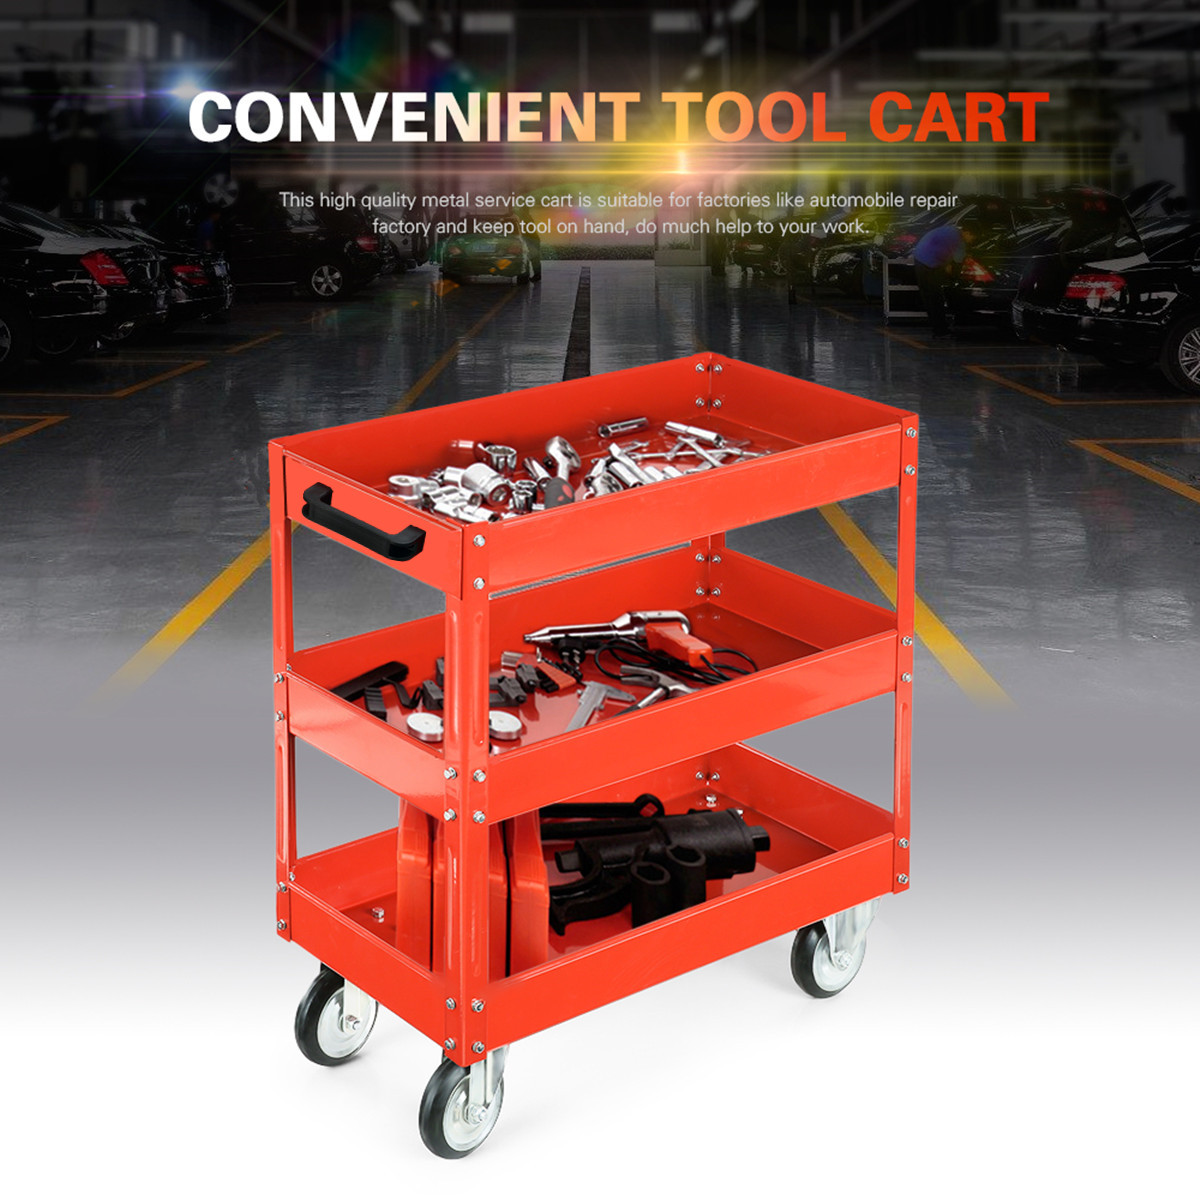 Heavy   Workshop Garage DIY Tool Storage Trolley Wheel Cart Tray 3 Tier Shelf 200kg Load Capacity for Holding Heavy Equipment